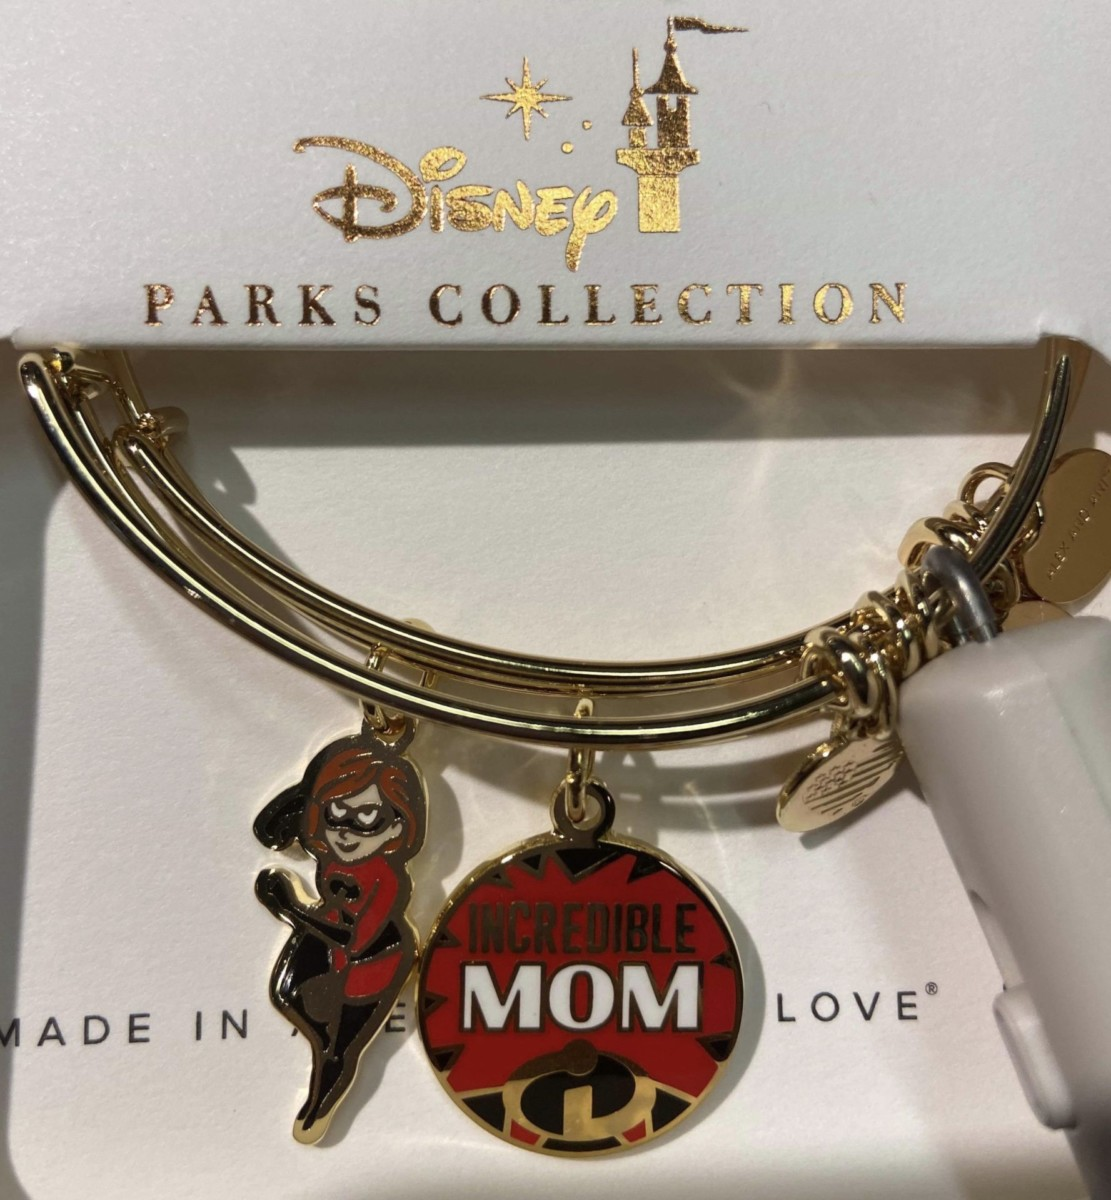 New Pixar Alex and Ani Bracelets! #disneystyle 3